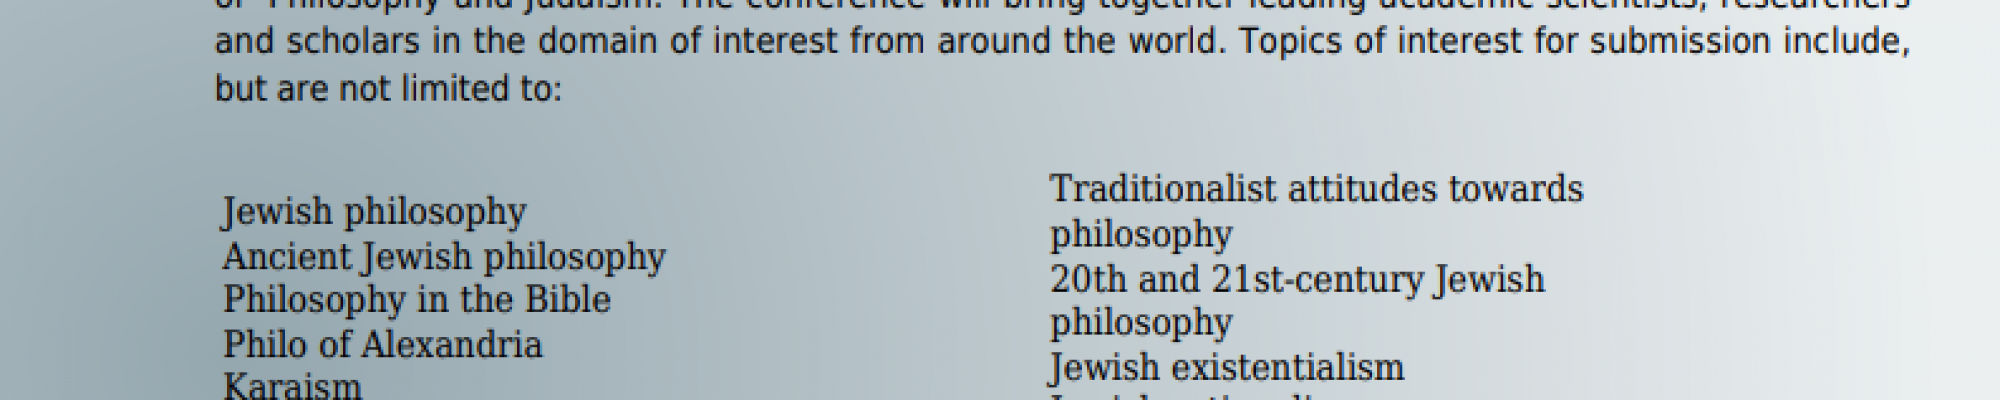 ICPJ-2021.-15.-International-Conference-on-Philosophy-and-Judaism